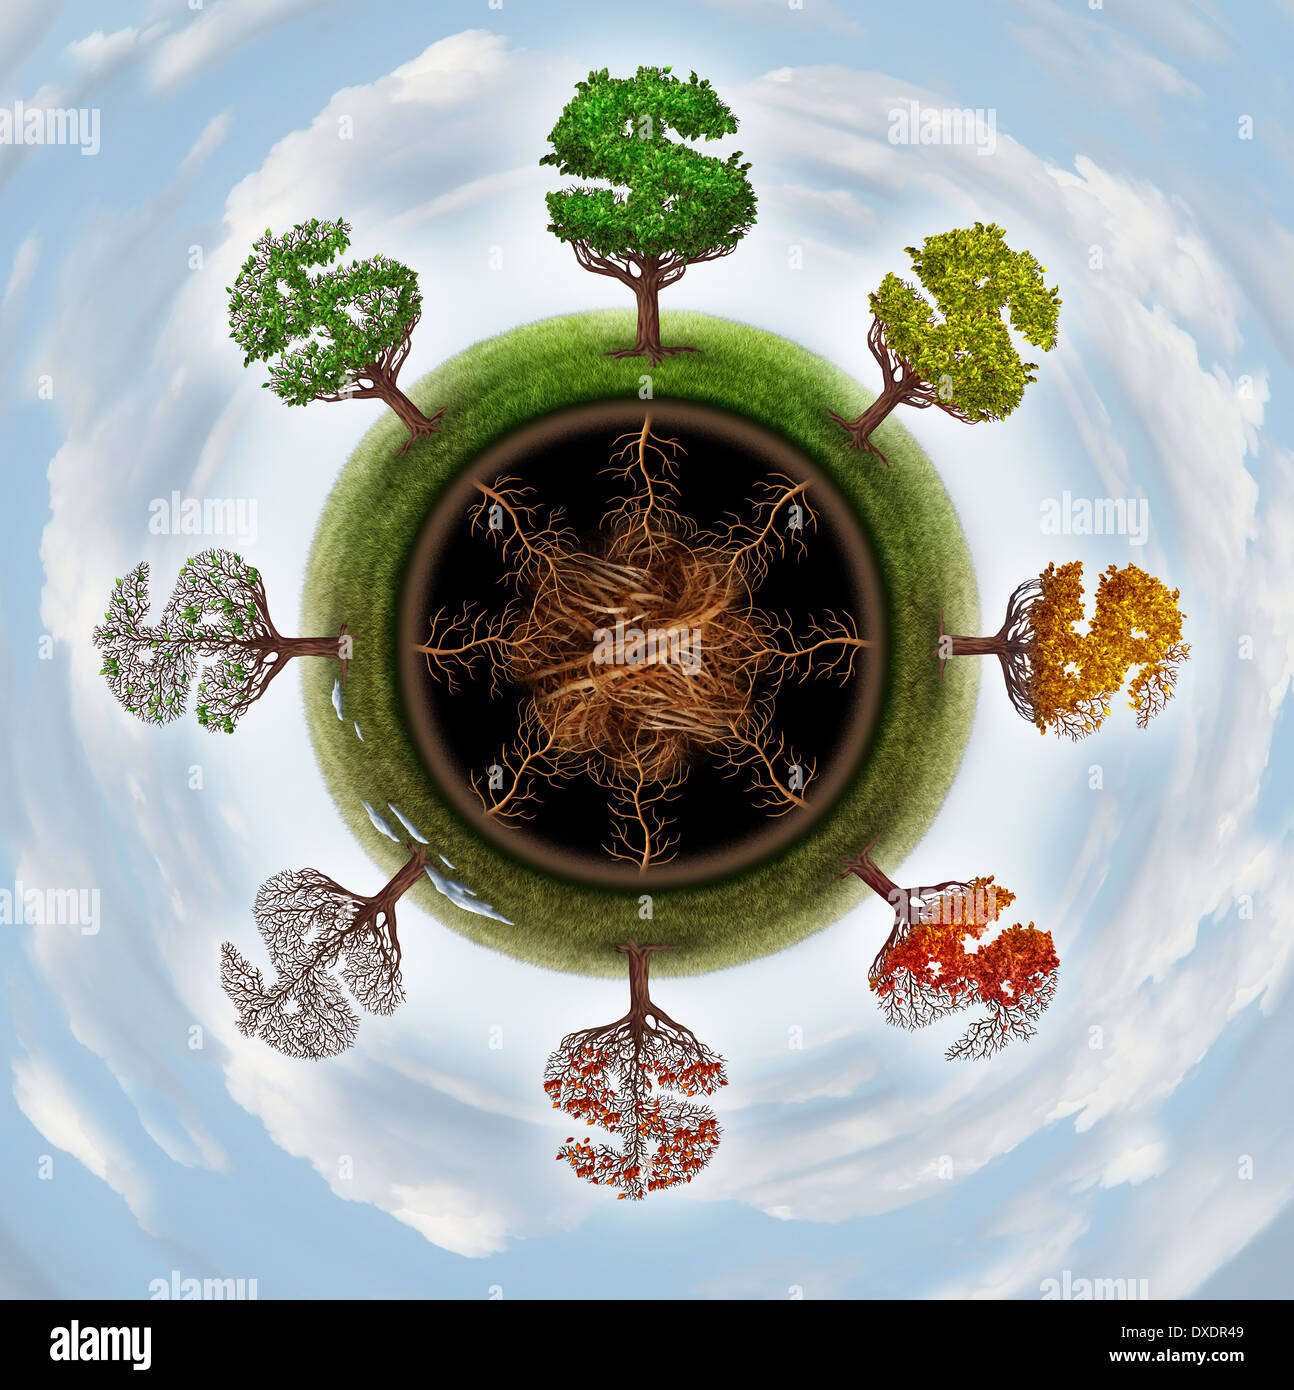 Business cycle and economic change concept as a group of trees shaped as a dollar sign going through seasonal changes from winter spring summer and fall as a financial metaphor for the global economy. - Stock Image